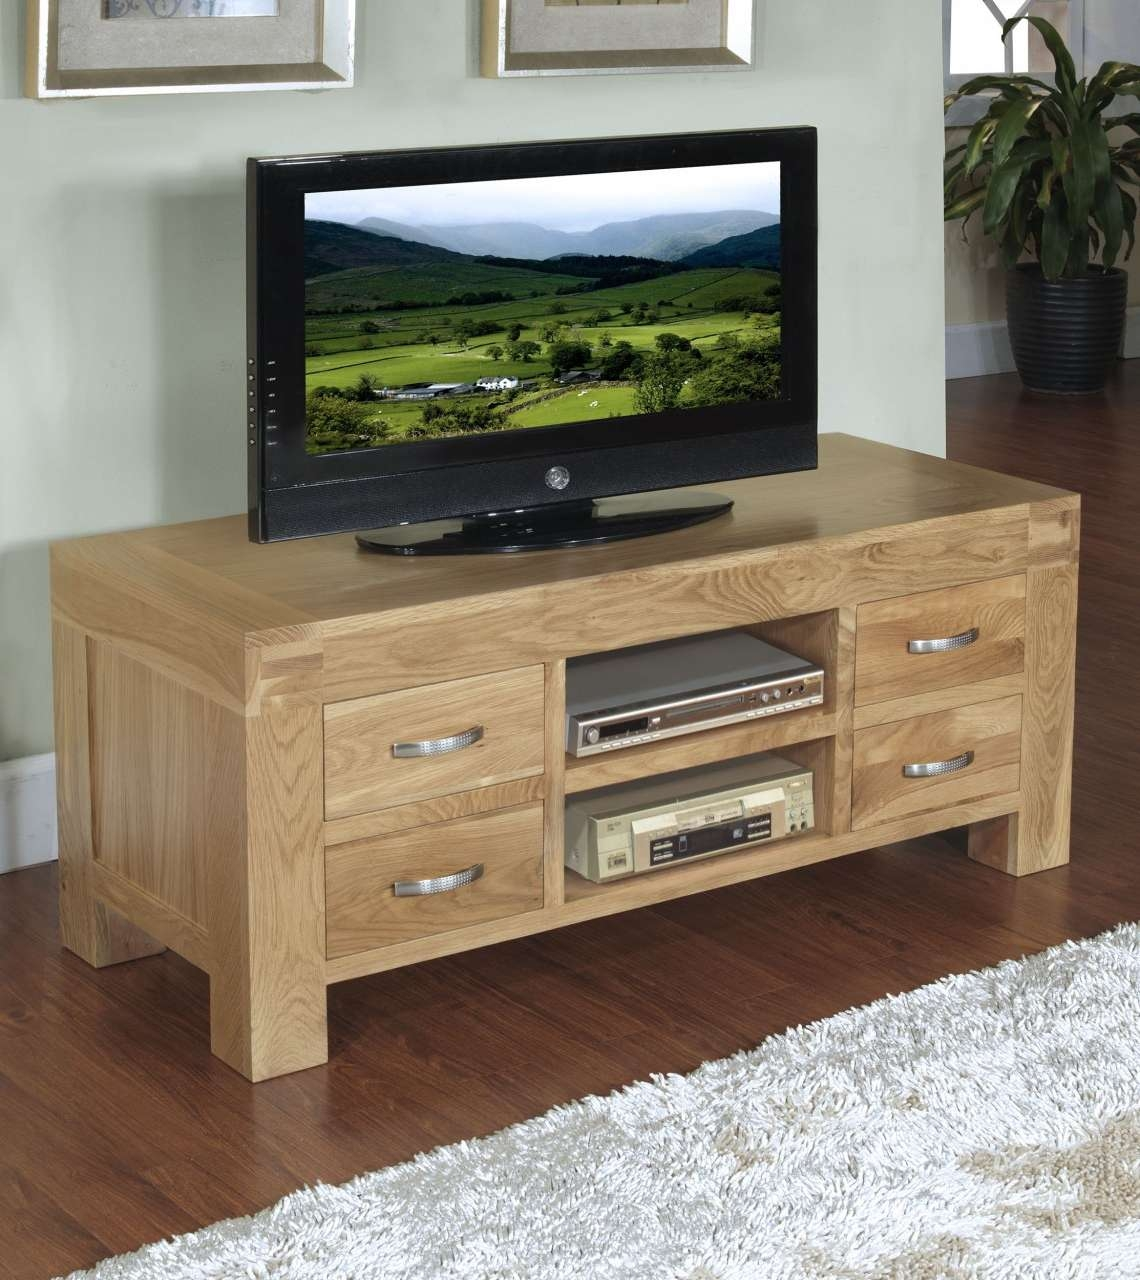 Cabinet Tv Stand Furniture | Uv Furniture Inside Wide Tv Cabinets (View 20 of 20)